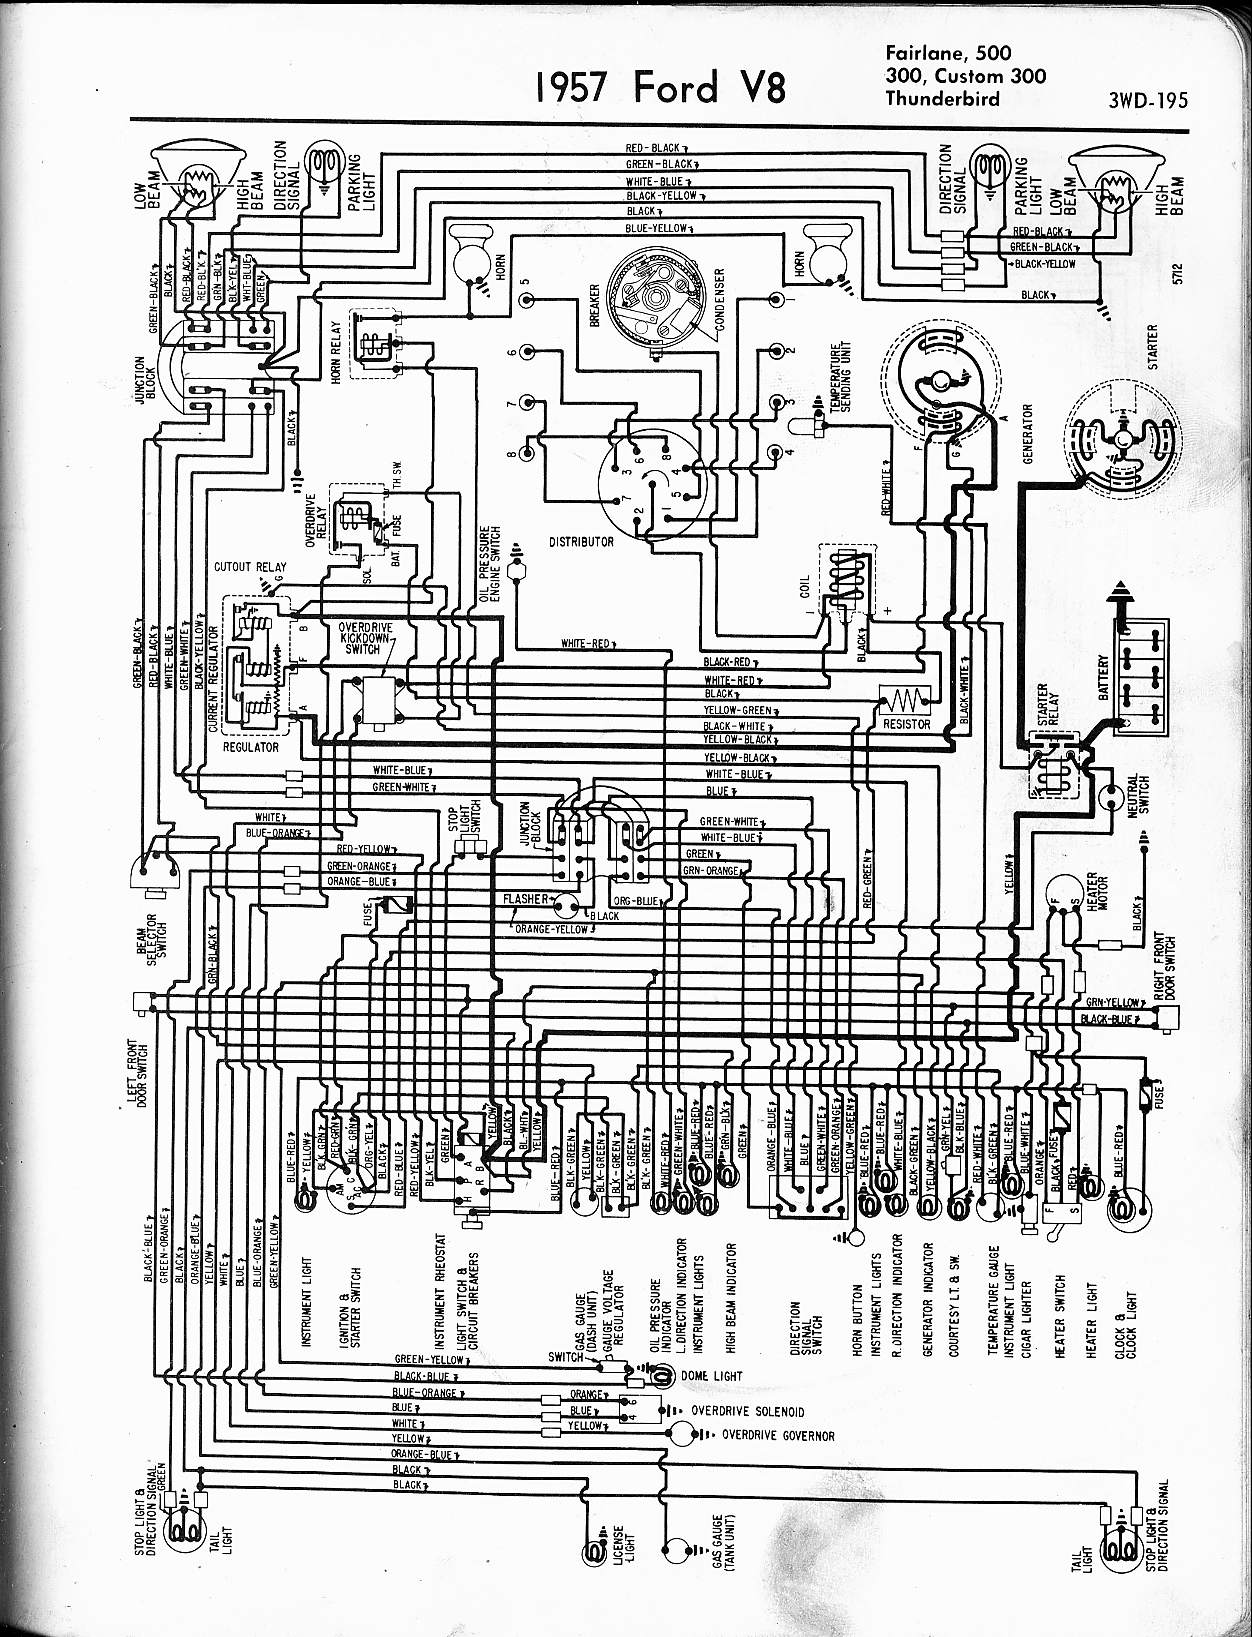 hight resolution of 2004 ford thunderbird wiring diagram data wiring diagram schema 1995 ford aspire wiring diagram 2004 ford thunderbird wiring diagram